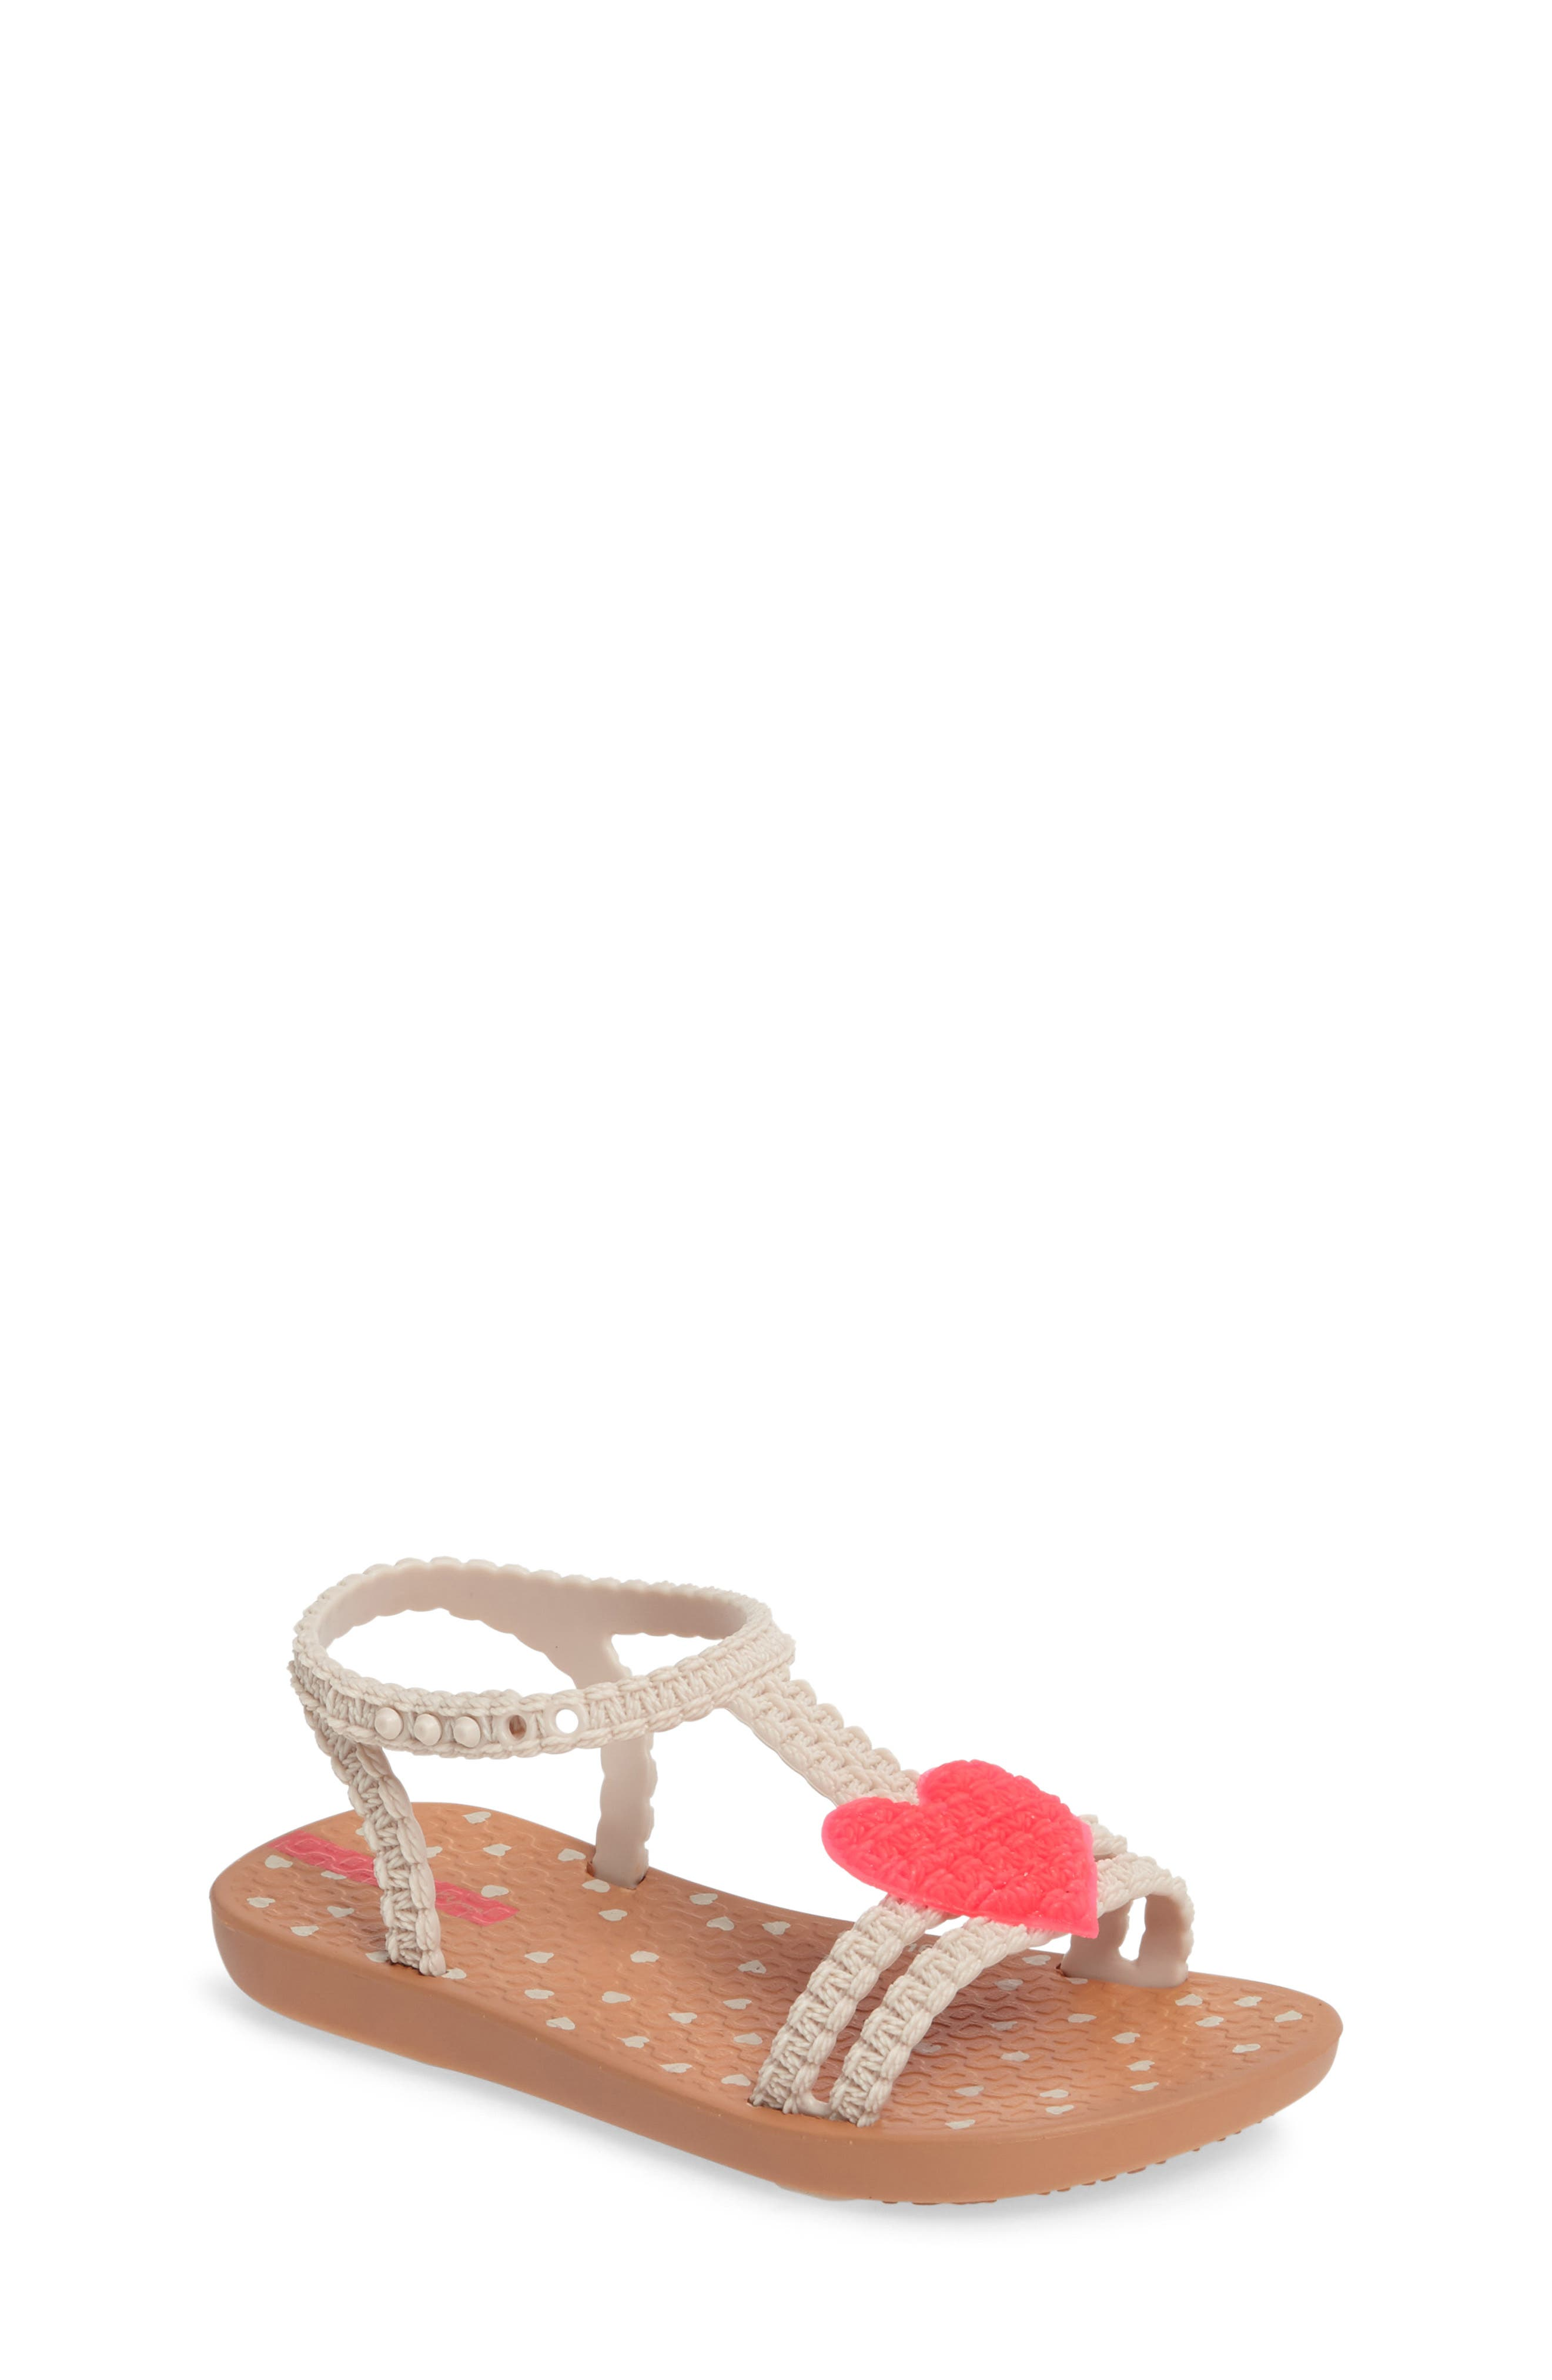 My First Ipanema Sandal,                         Main,                         color, 239